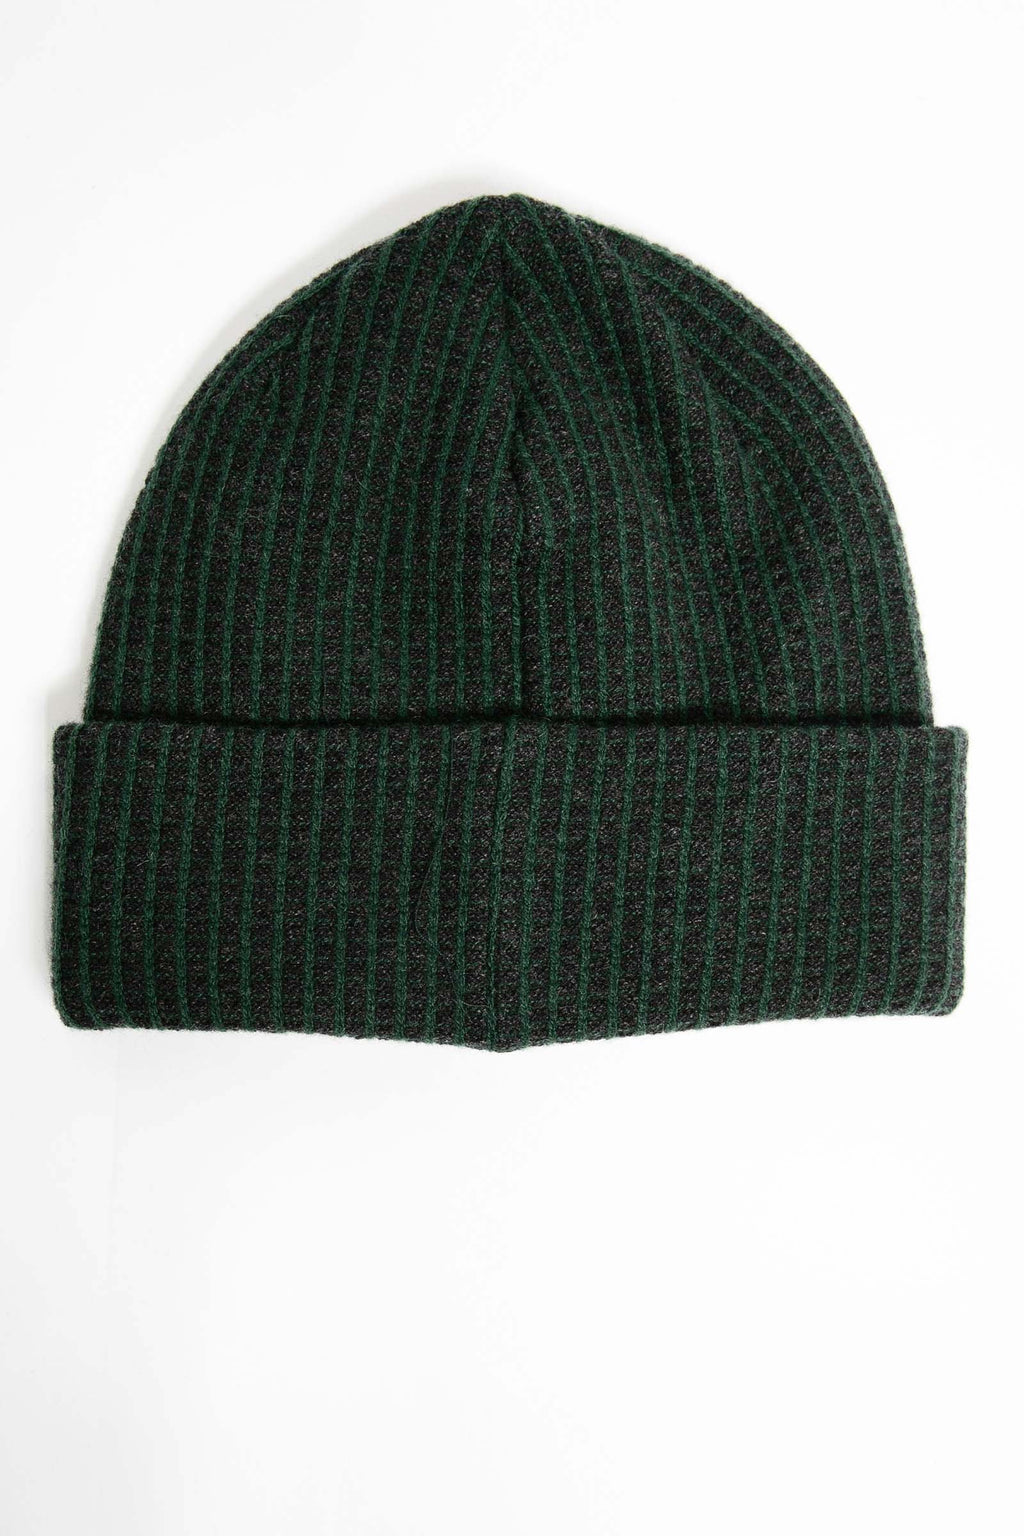 I.S.M. 'Silent Majority' Green Cashmere Beanie